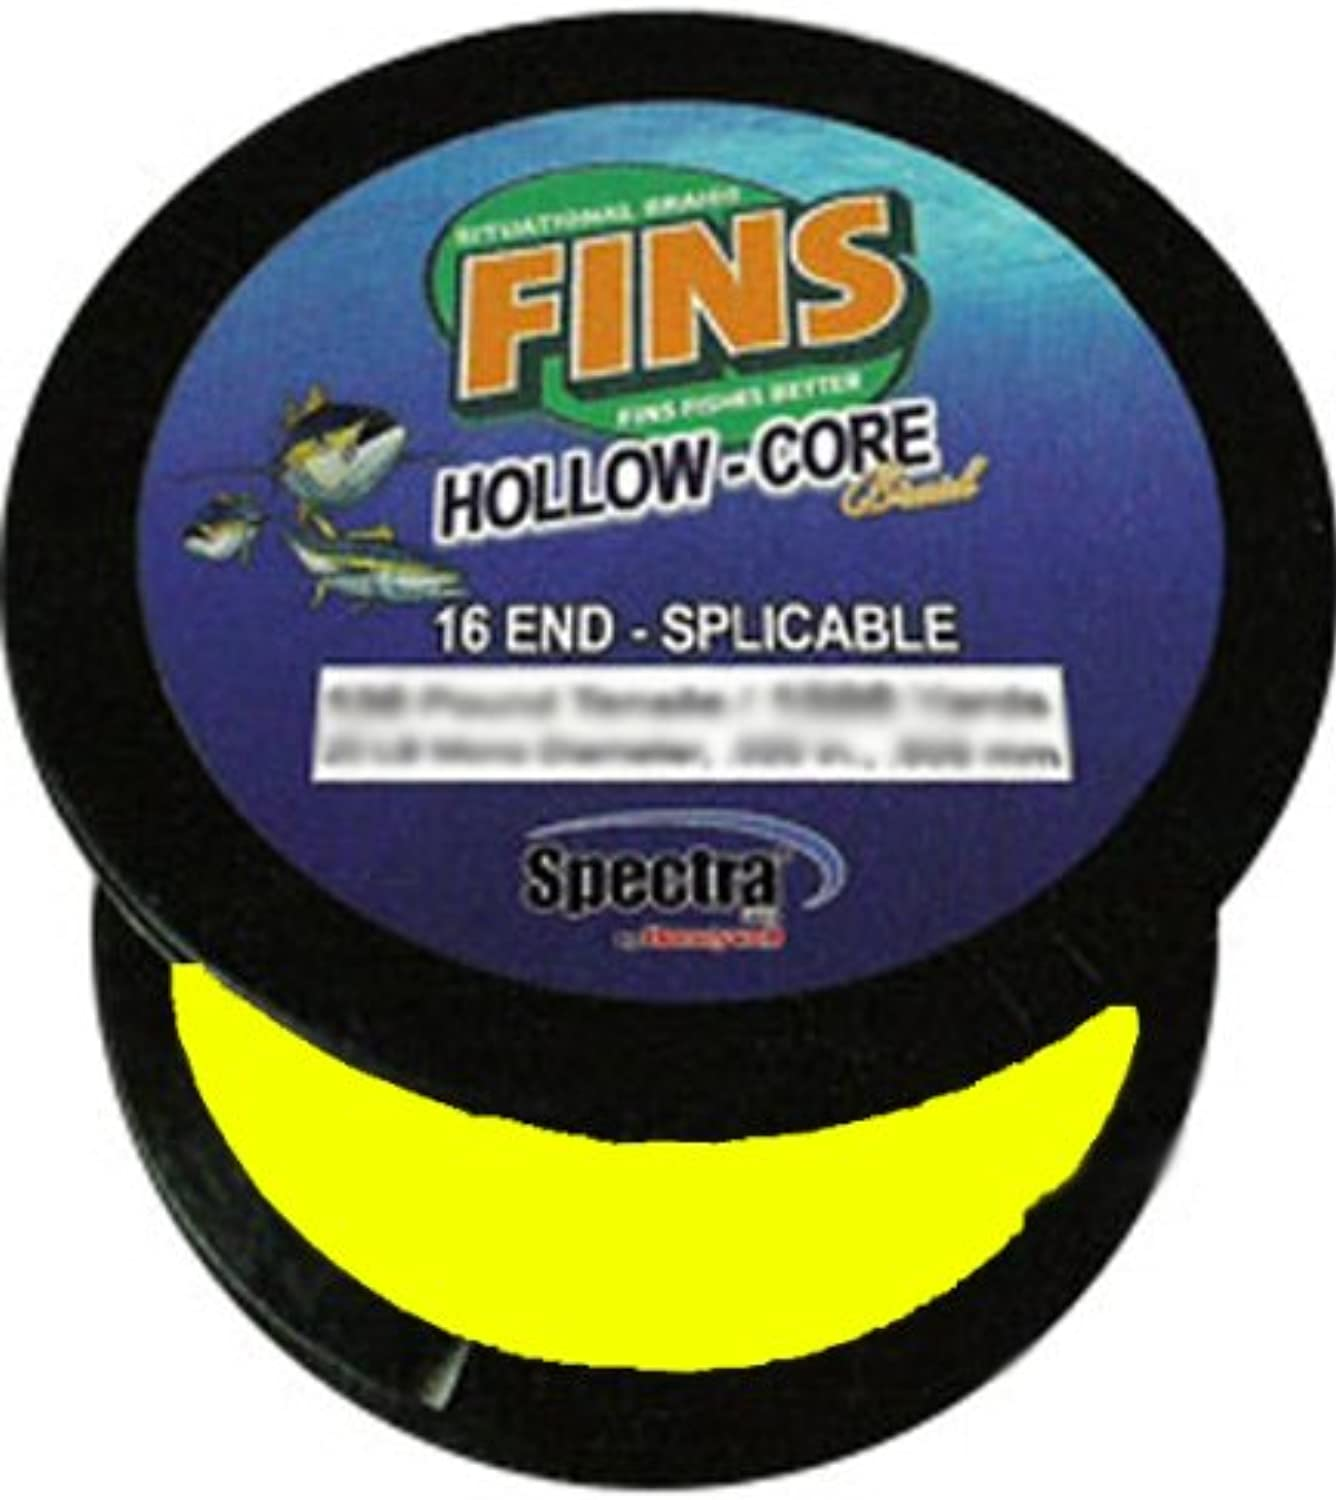 BBS TECH Fins Spectra 2400Yards Hollow Core Fishing Line, Yellow, 200Pound